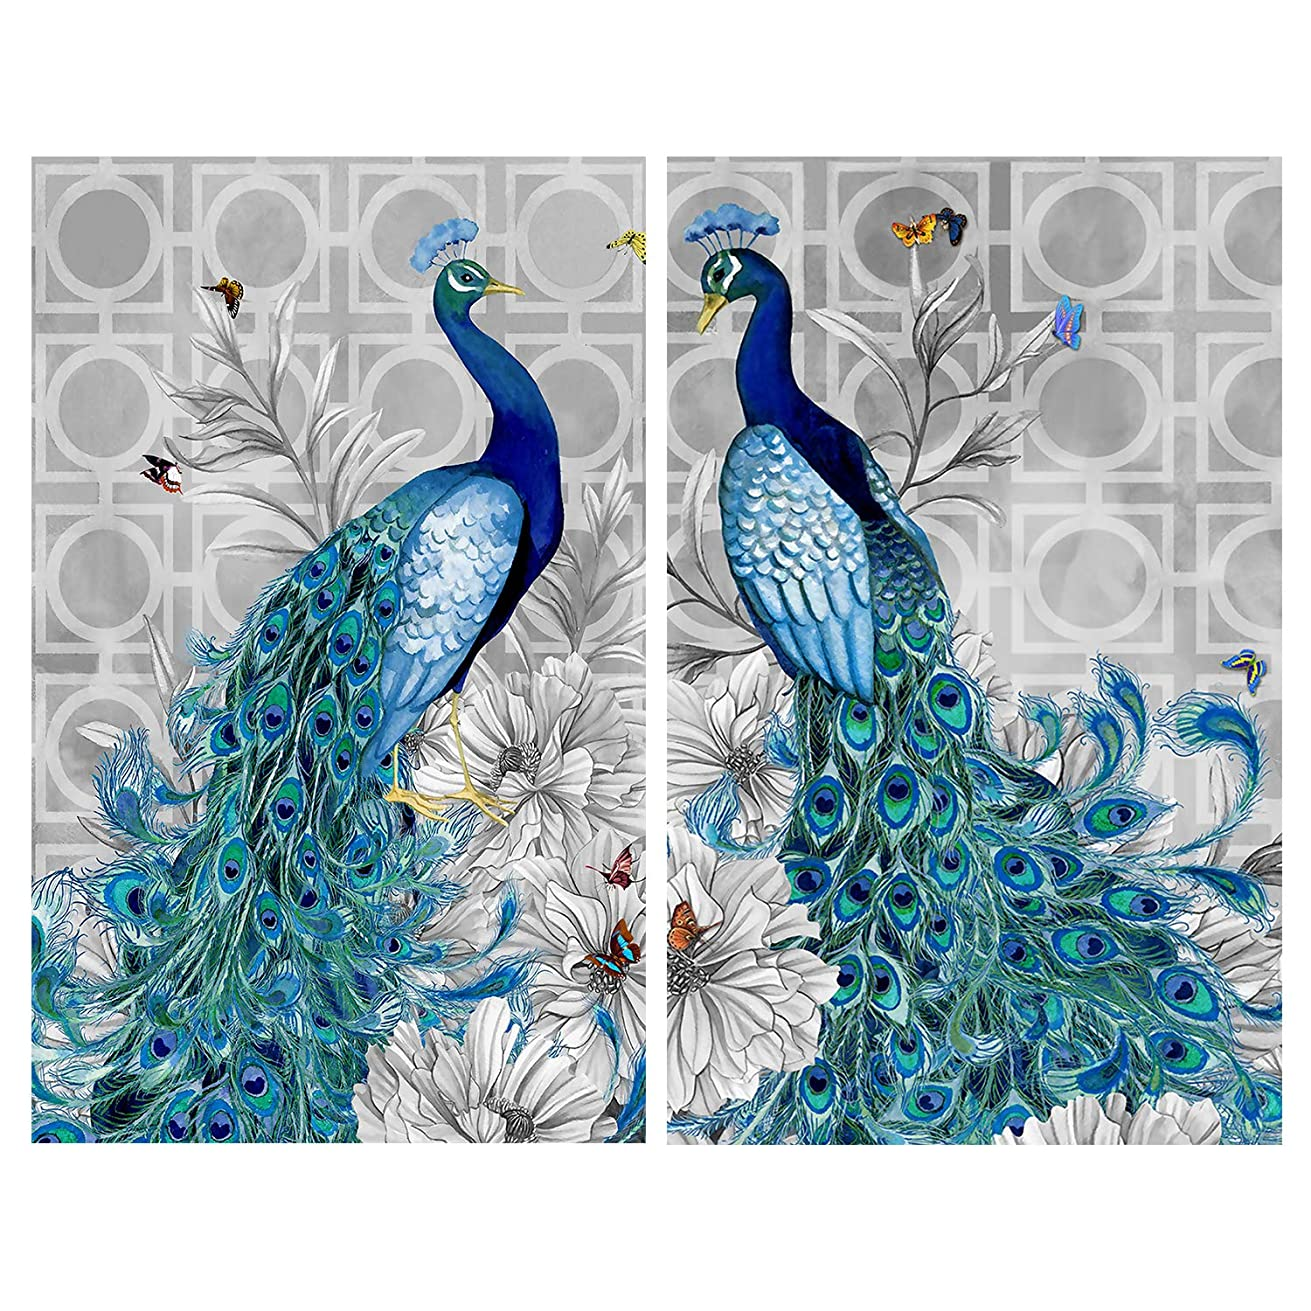 2 Pack DIY 5D Diamond Painting by Number Kits Full Drill Round Rhinestone Embroidery Pictures Arts Craft for Home Wall Decoration (Peacock 11.8 x 15.7inches)